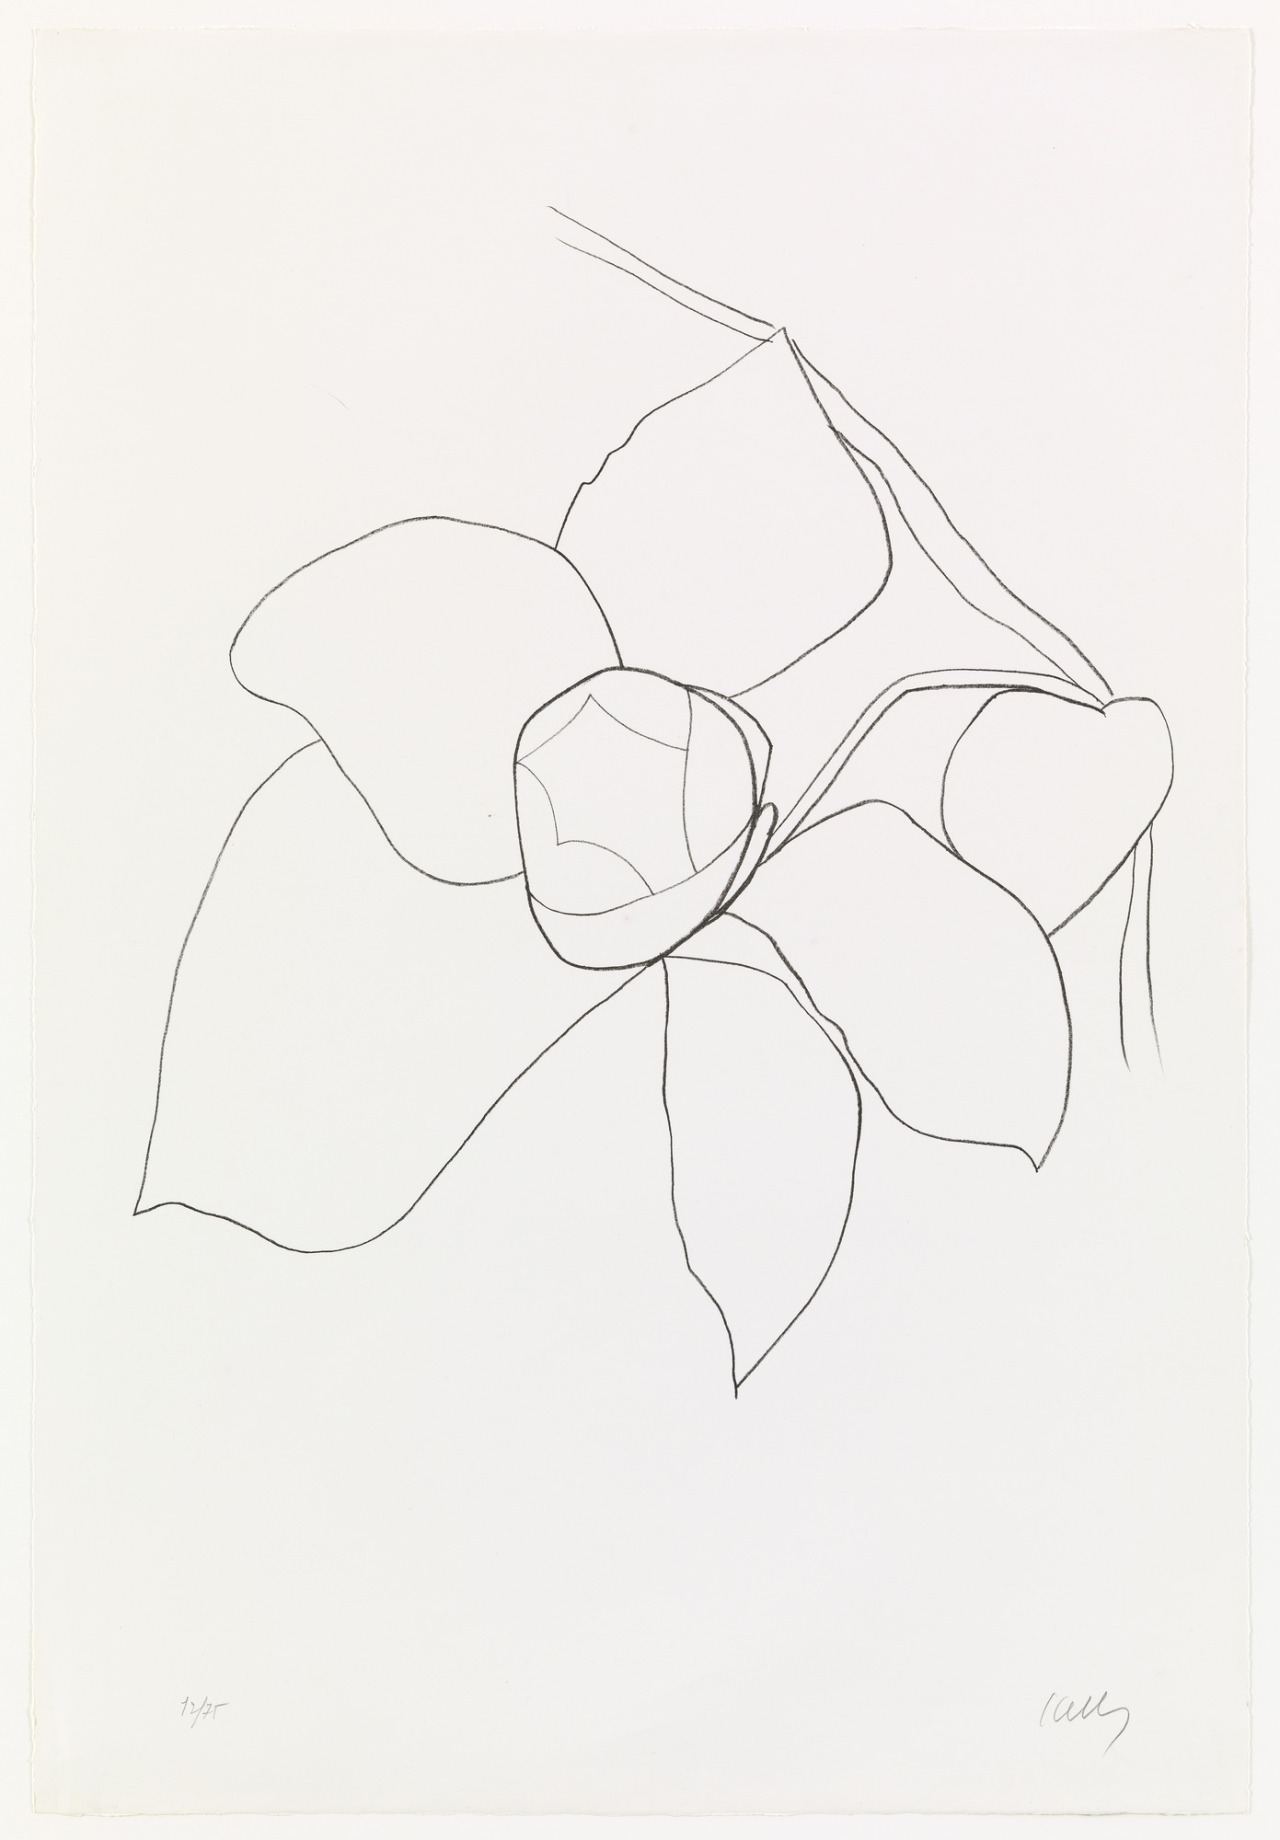 Ellsworth Kelly. Camellia II from Suite of Plant Lithographs. 1964–65, published 1966 Ellsworth Kelly Camellia II from Suite of Plant Lithographs 1964–65.jpg